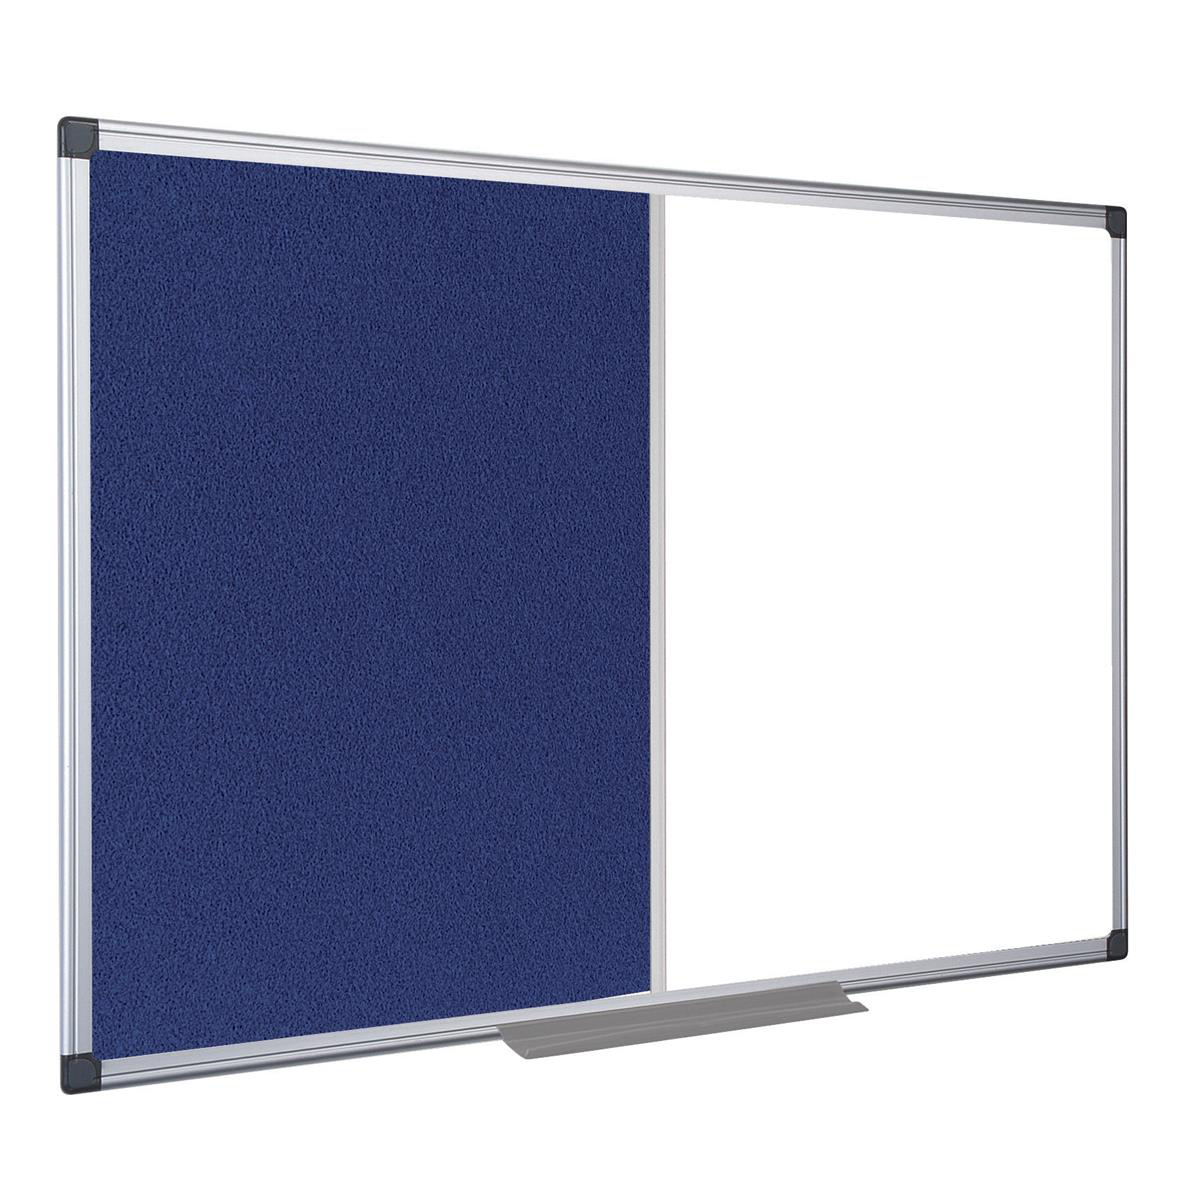 5 Star Office Combination Notice Board Felt and Drywipe W900xH600mm